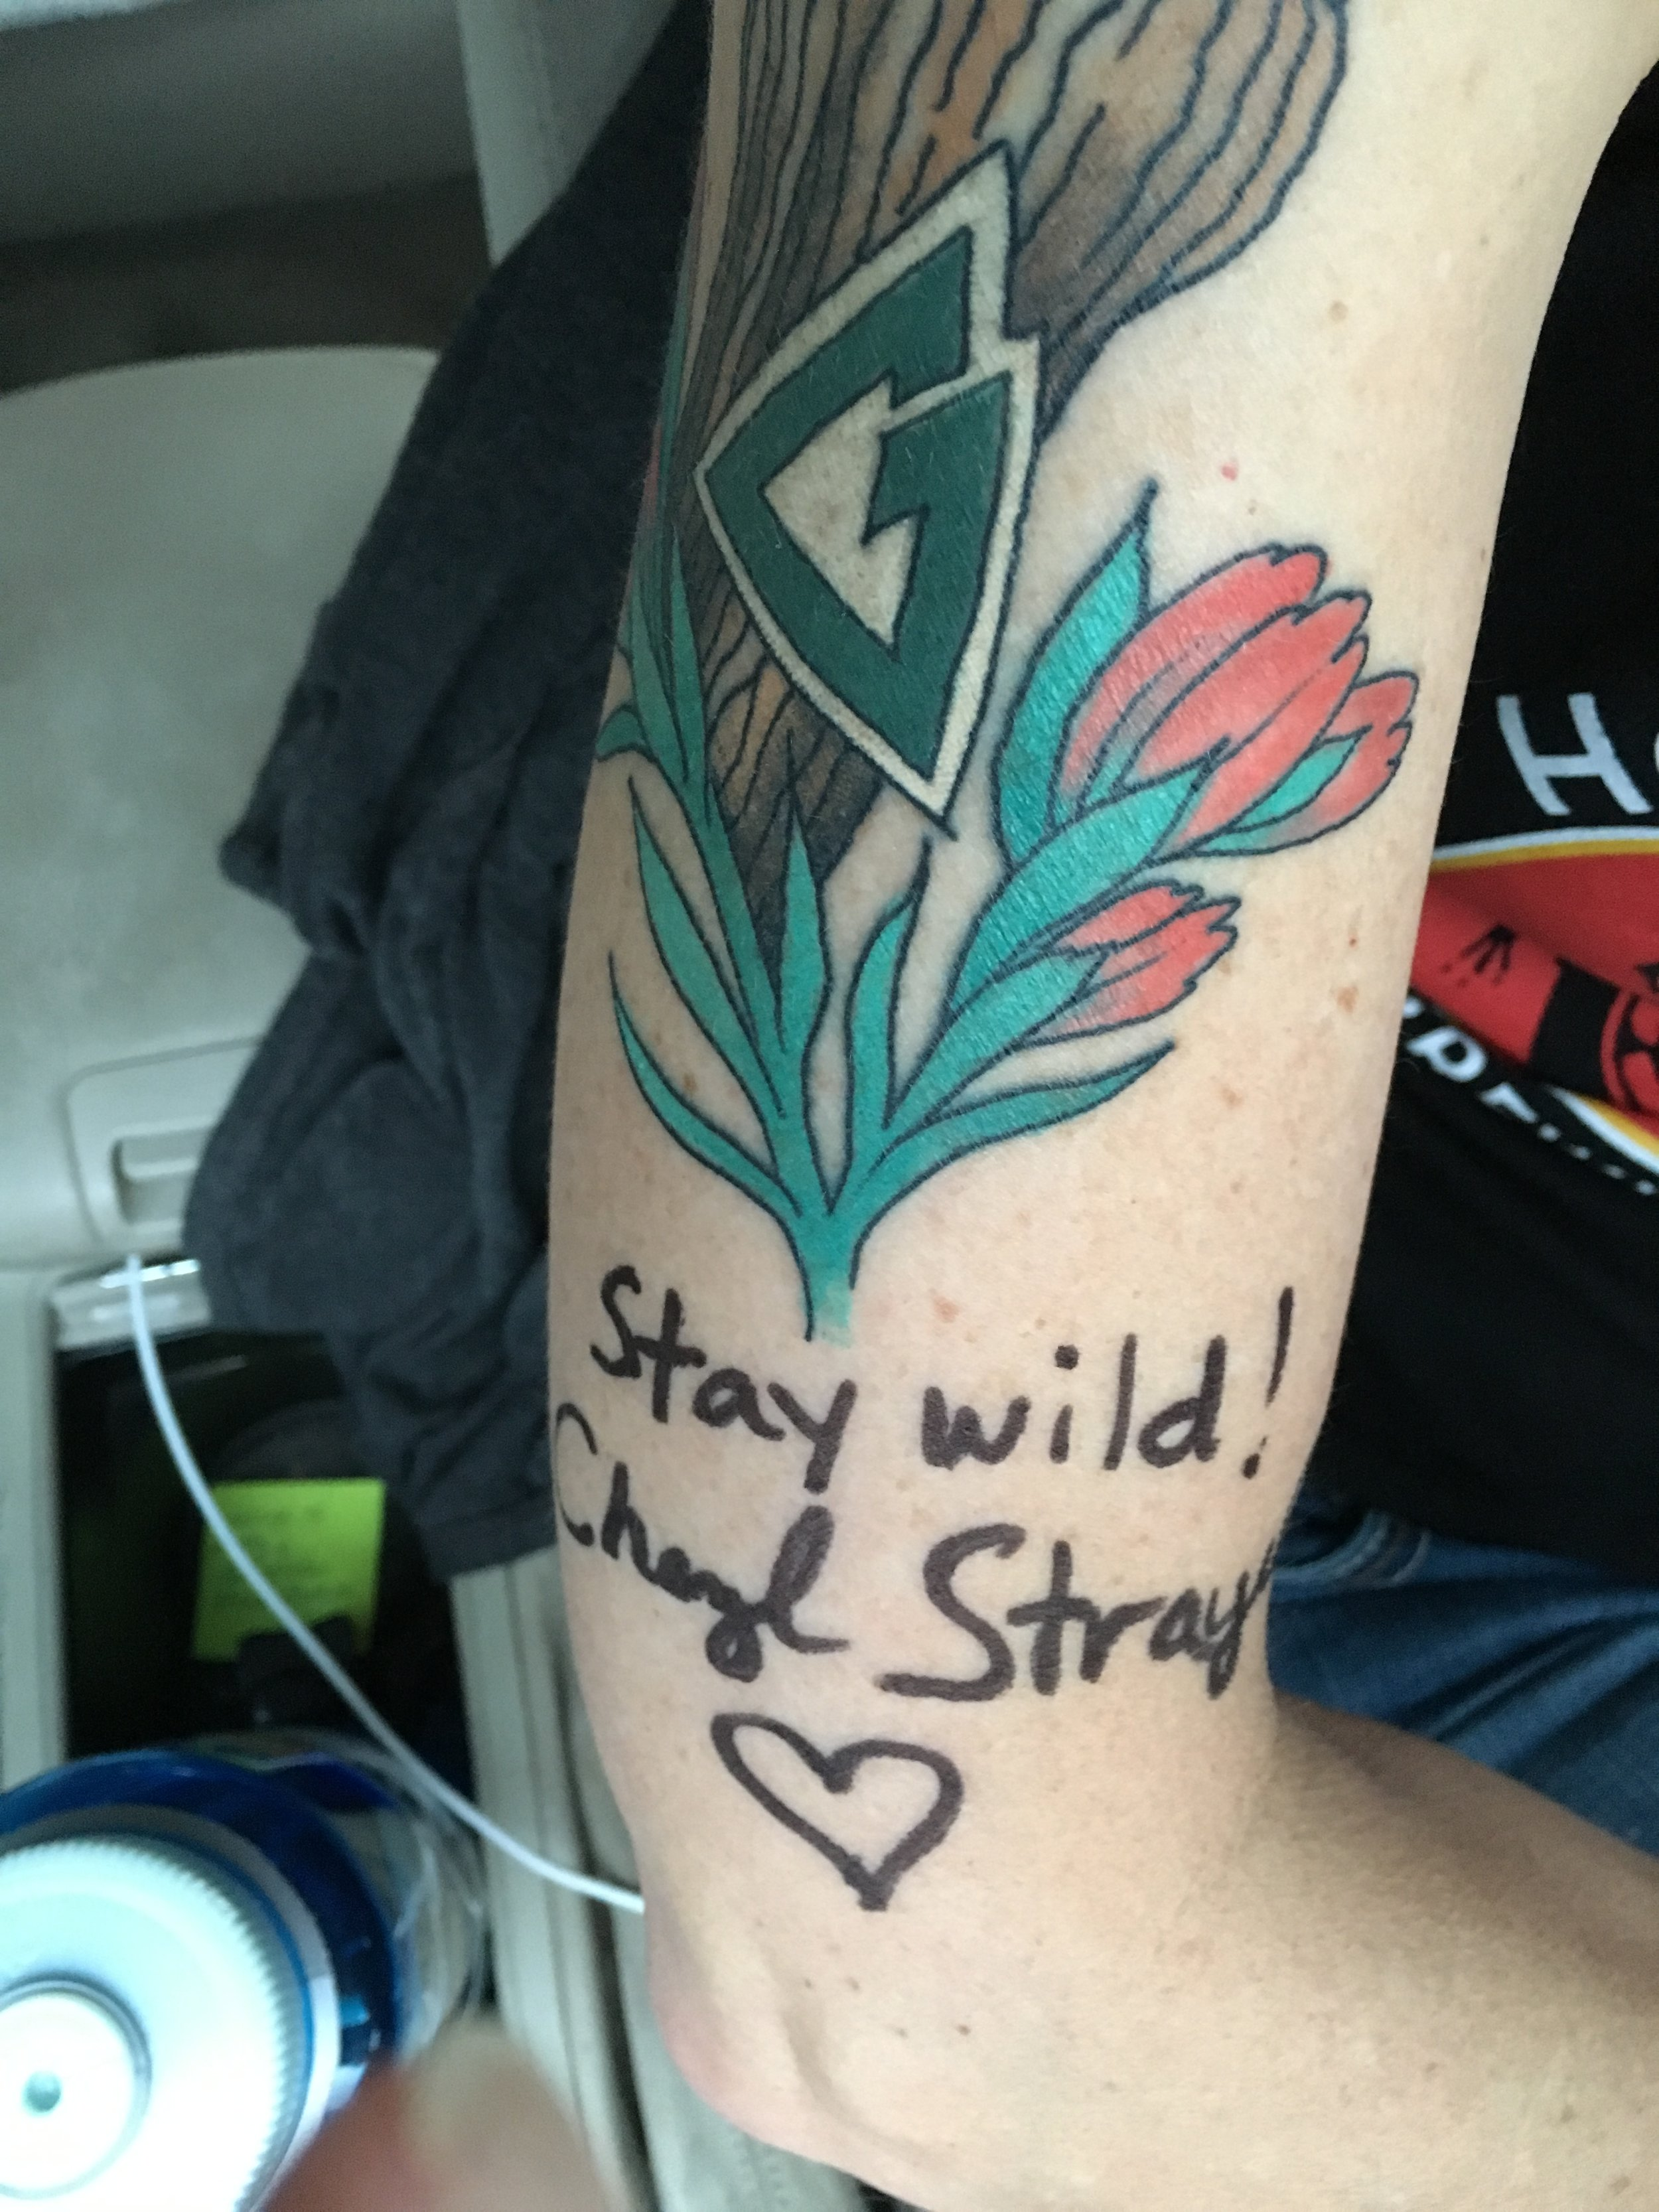 Cheryl Strayed then signed the arm that I may never wash again.